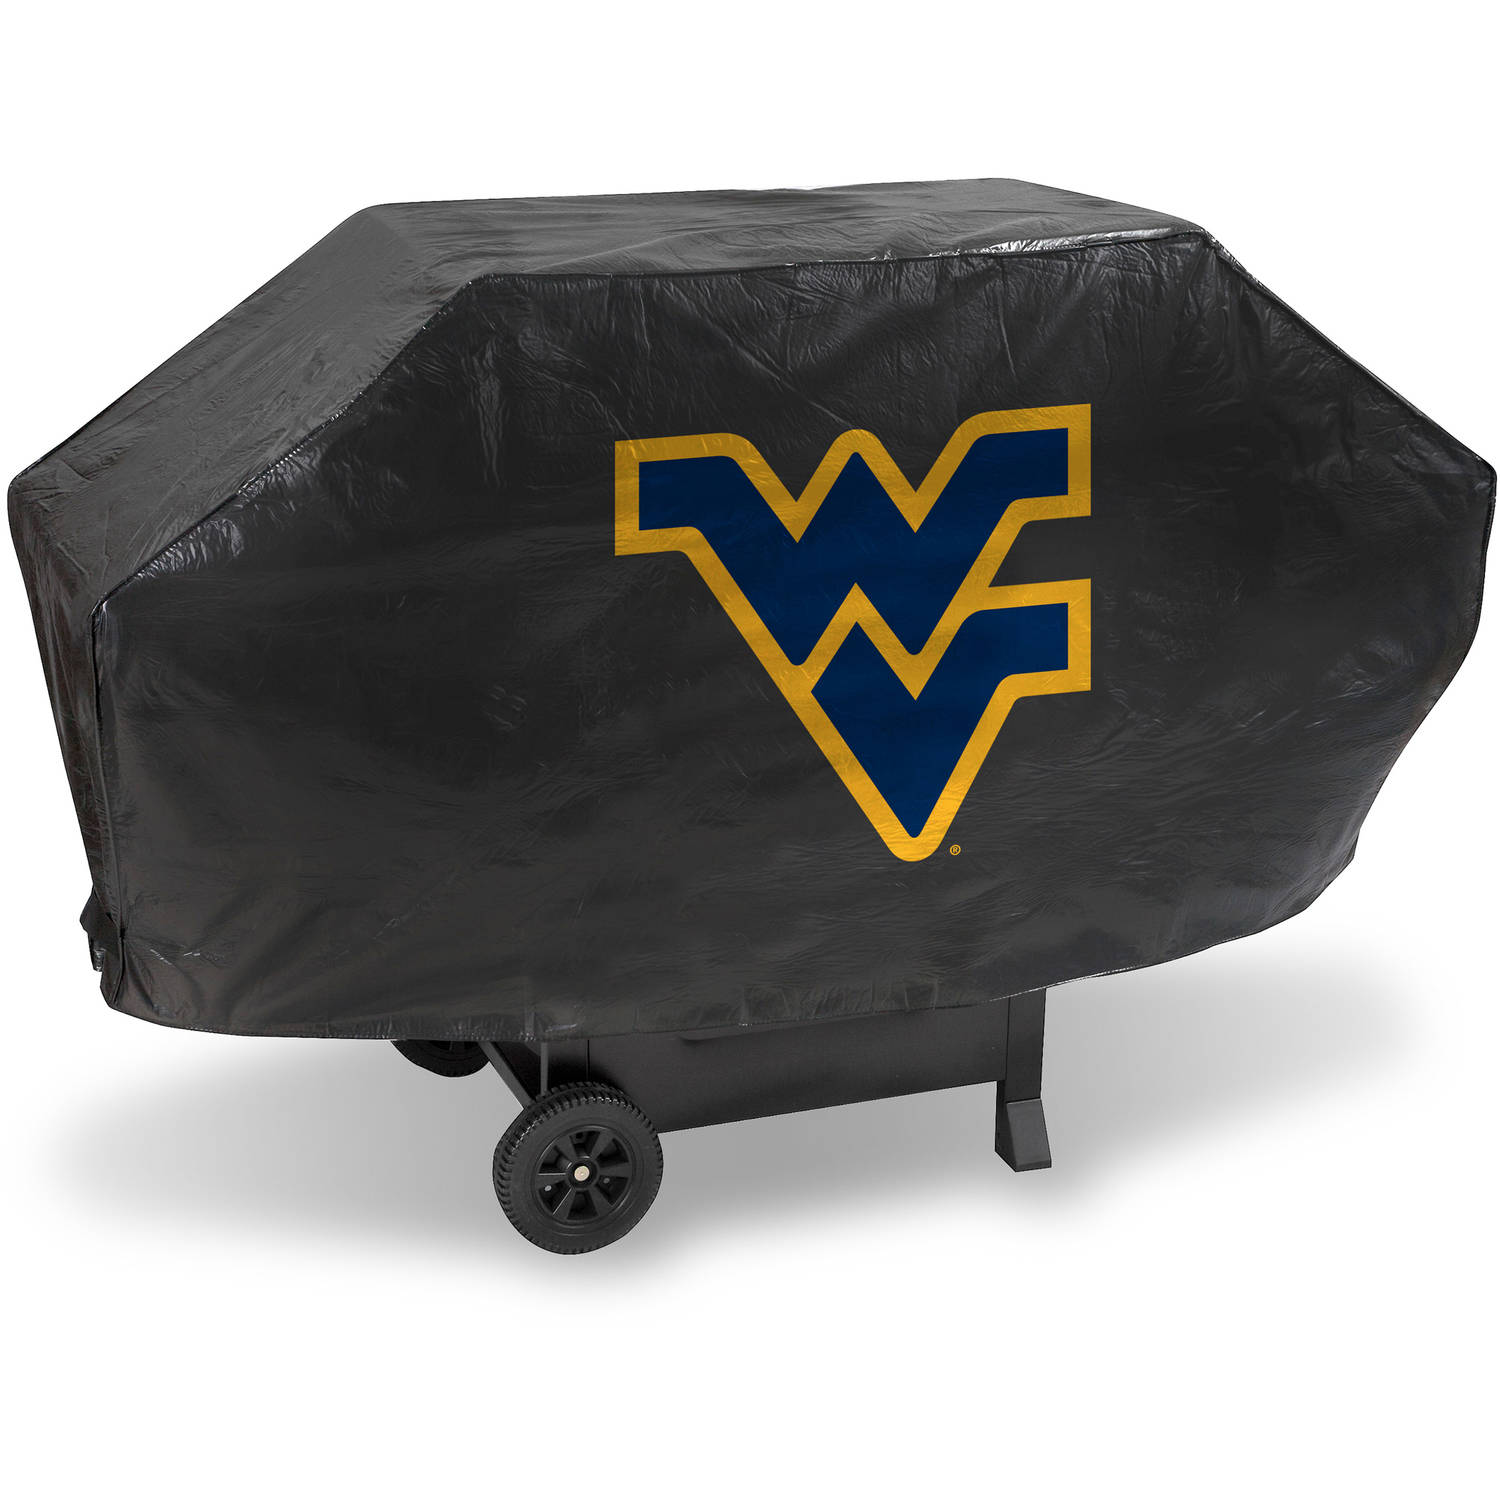 NCAA Rico Industries Deluxe Grill Cover, University of West Virginia Mountaineers